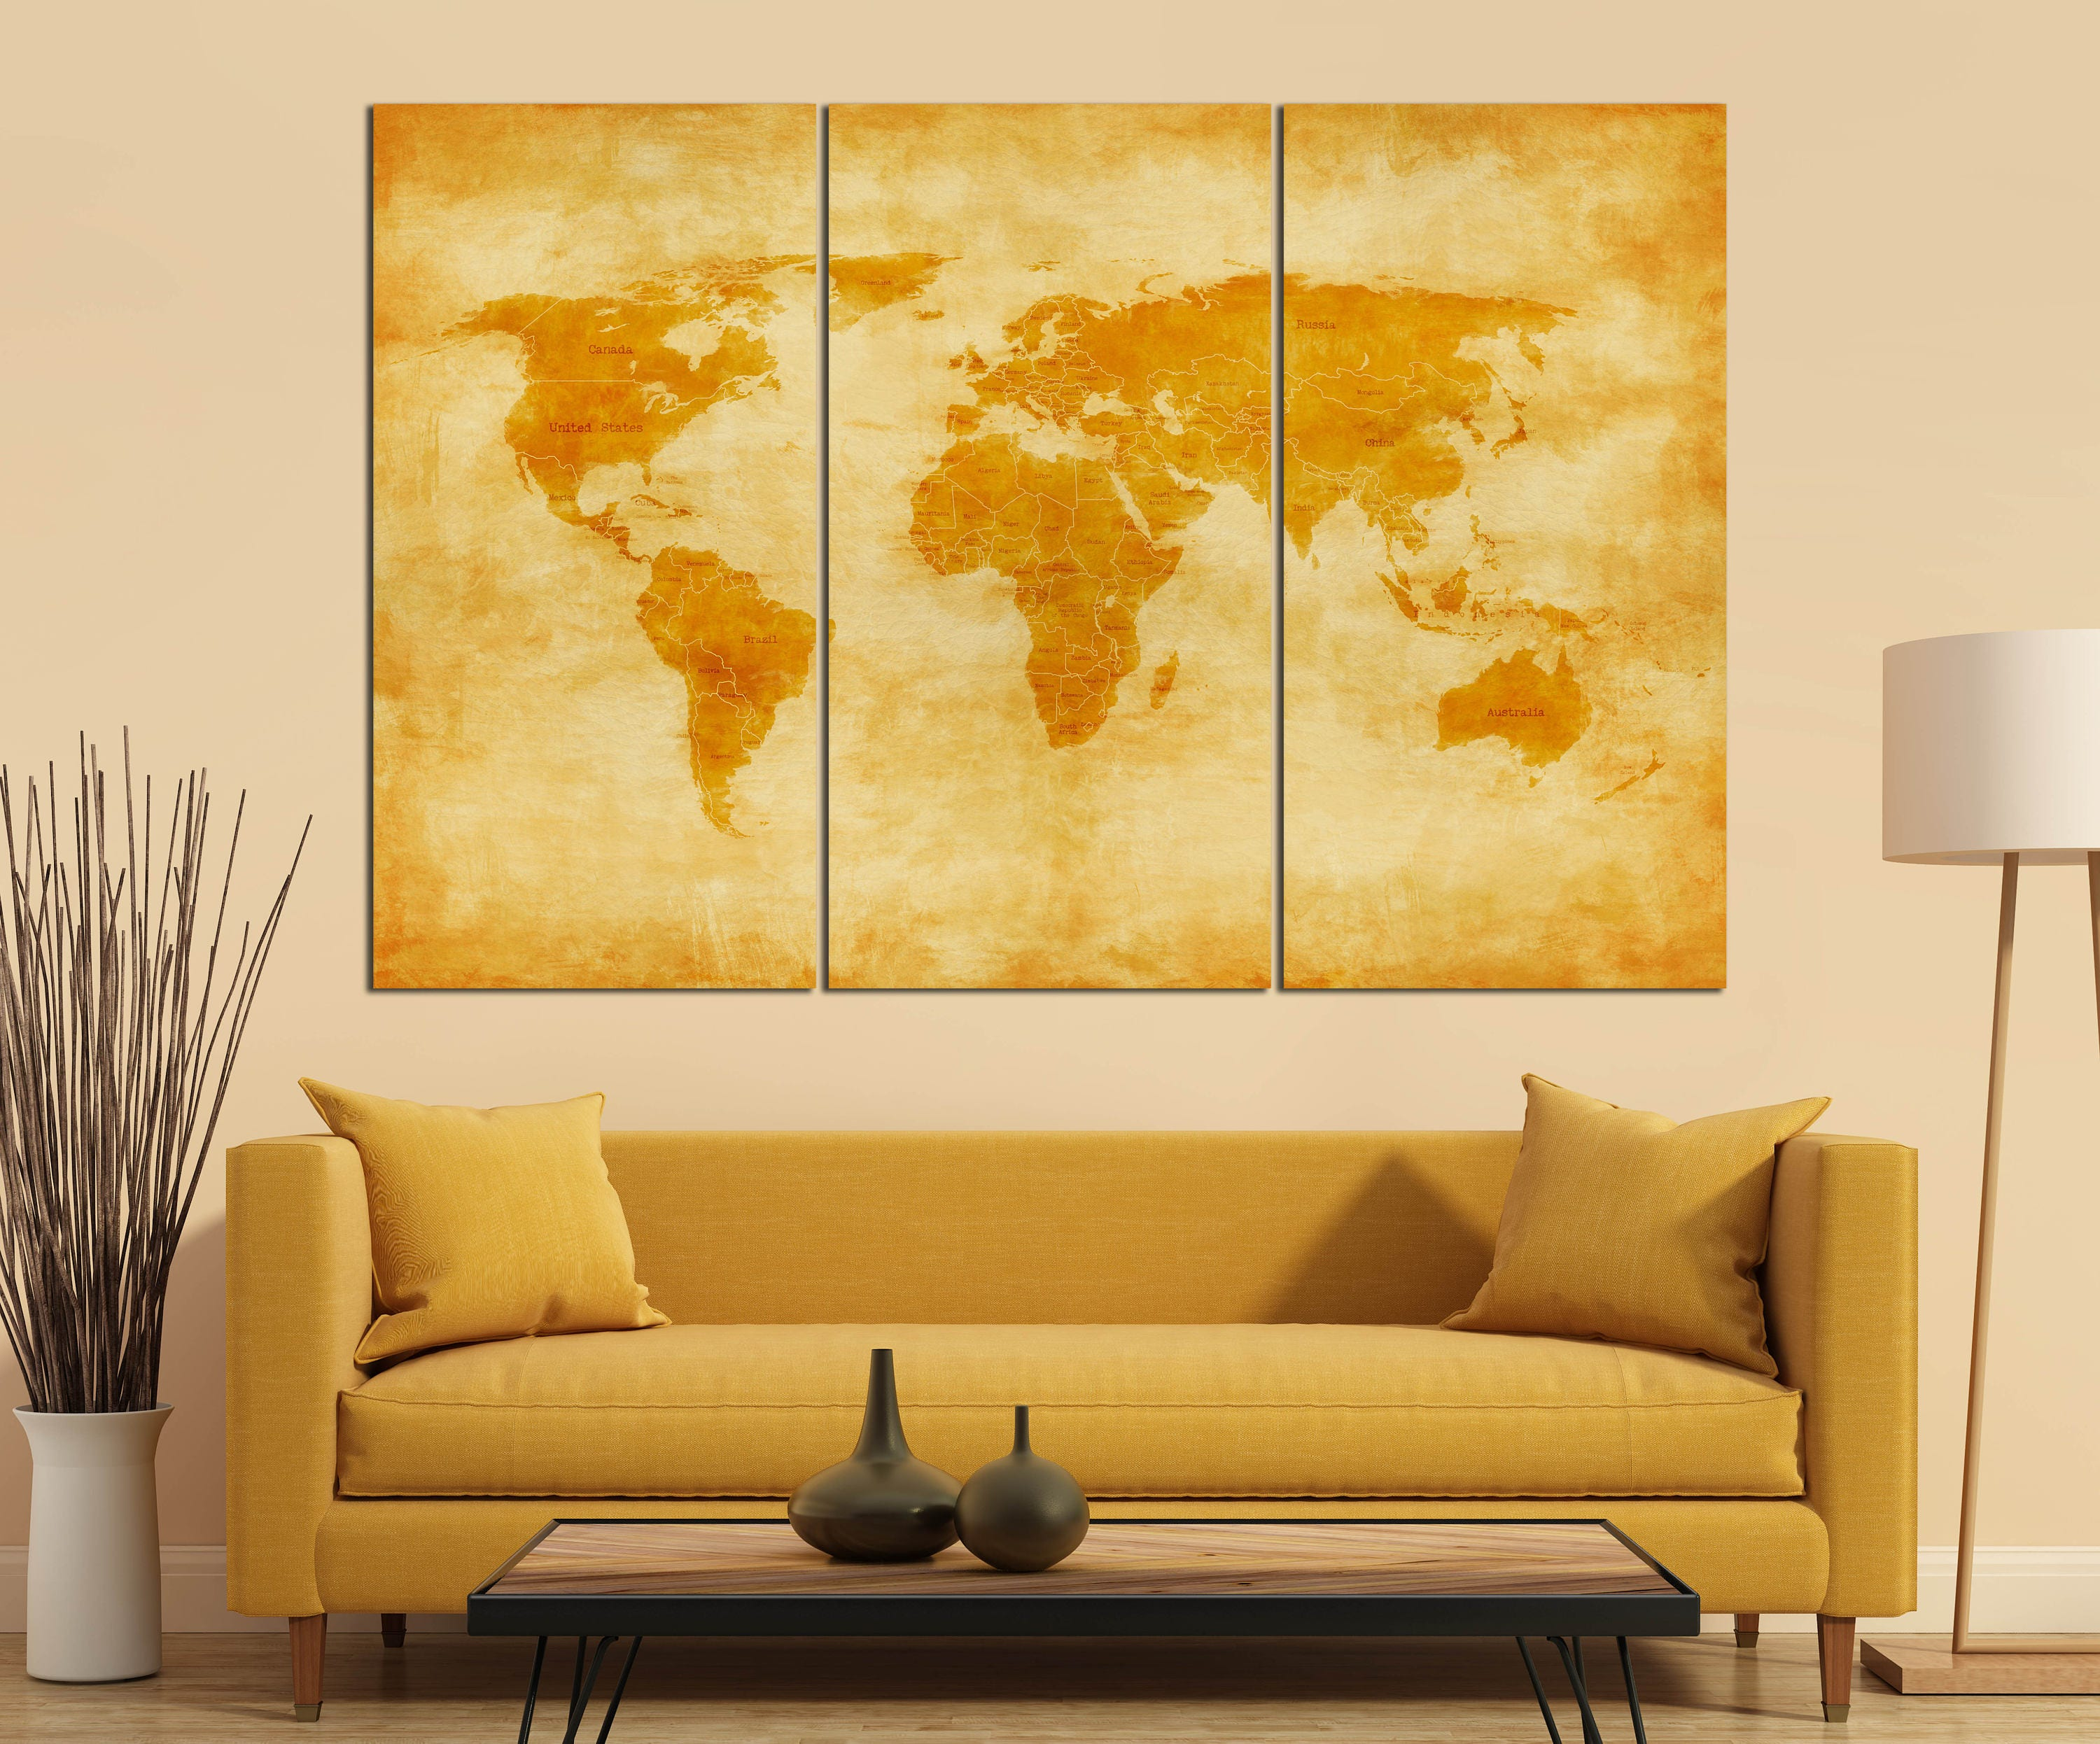 3 Panel Vintage World Map with Borders and Nations Leather Print ...